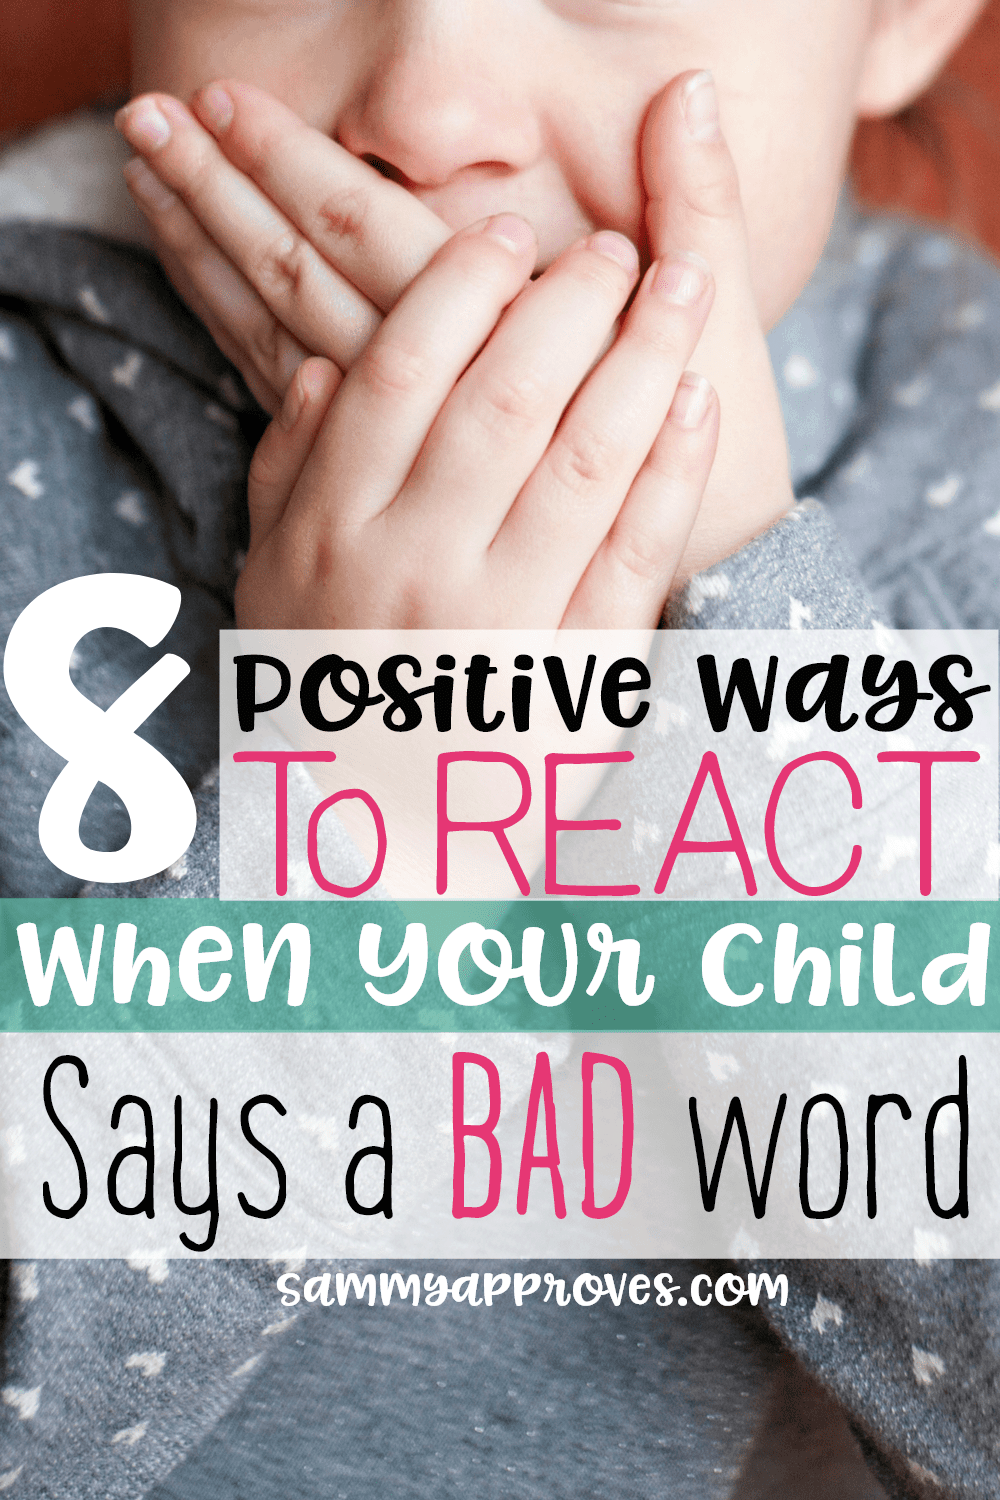 8 Positive Ways to React When Your Child Says a Bad Word